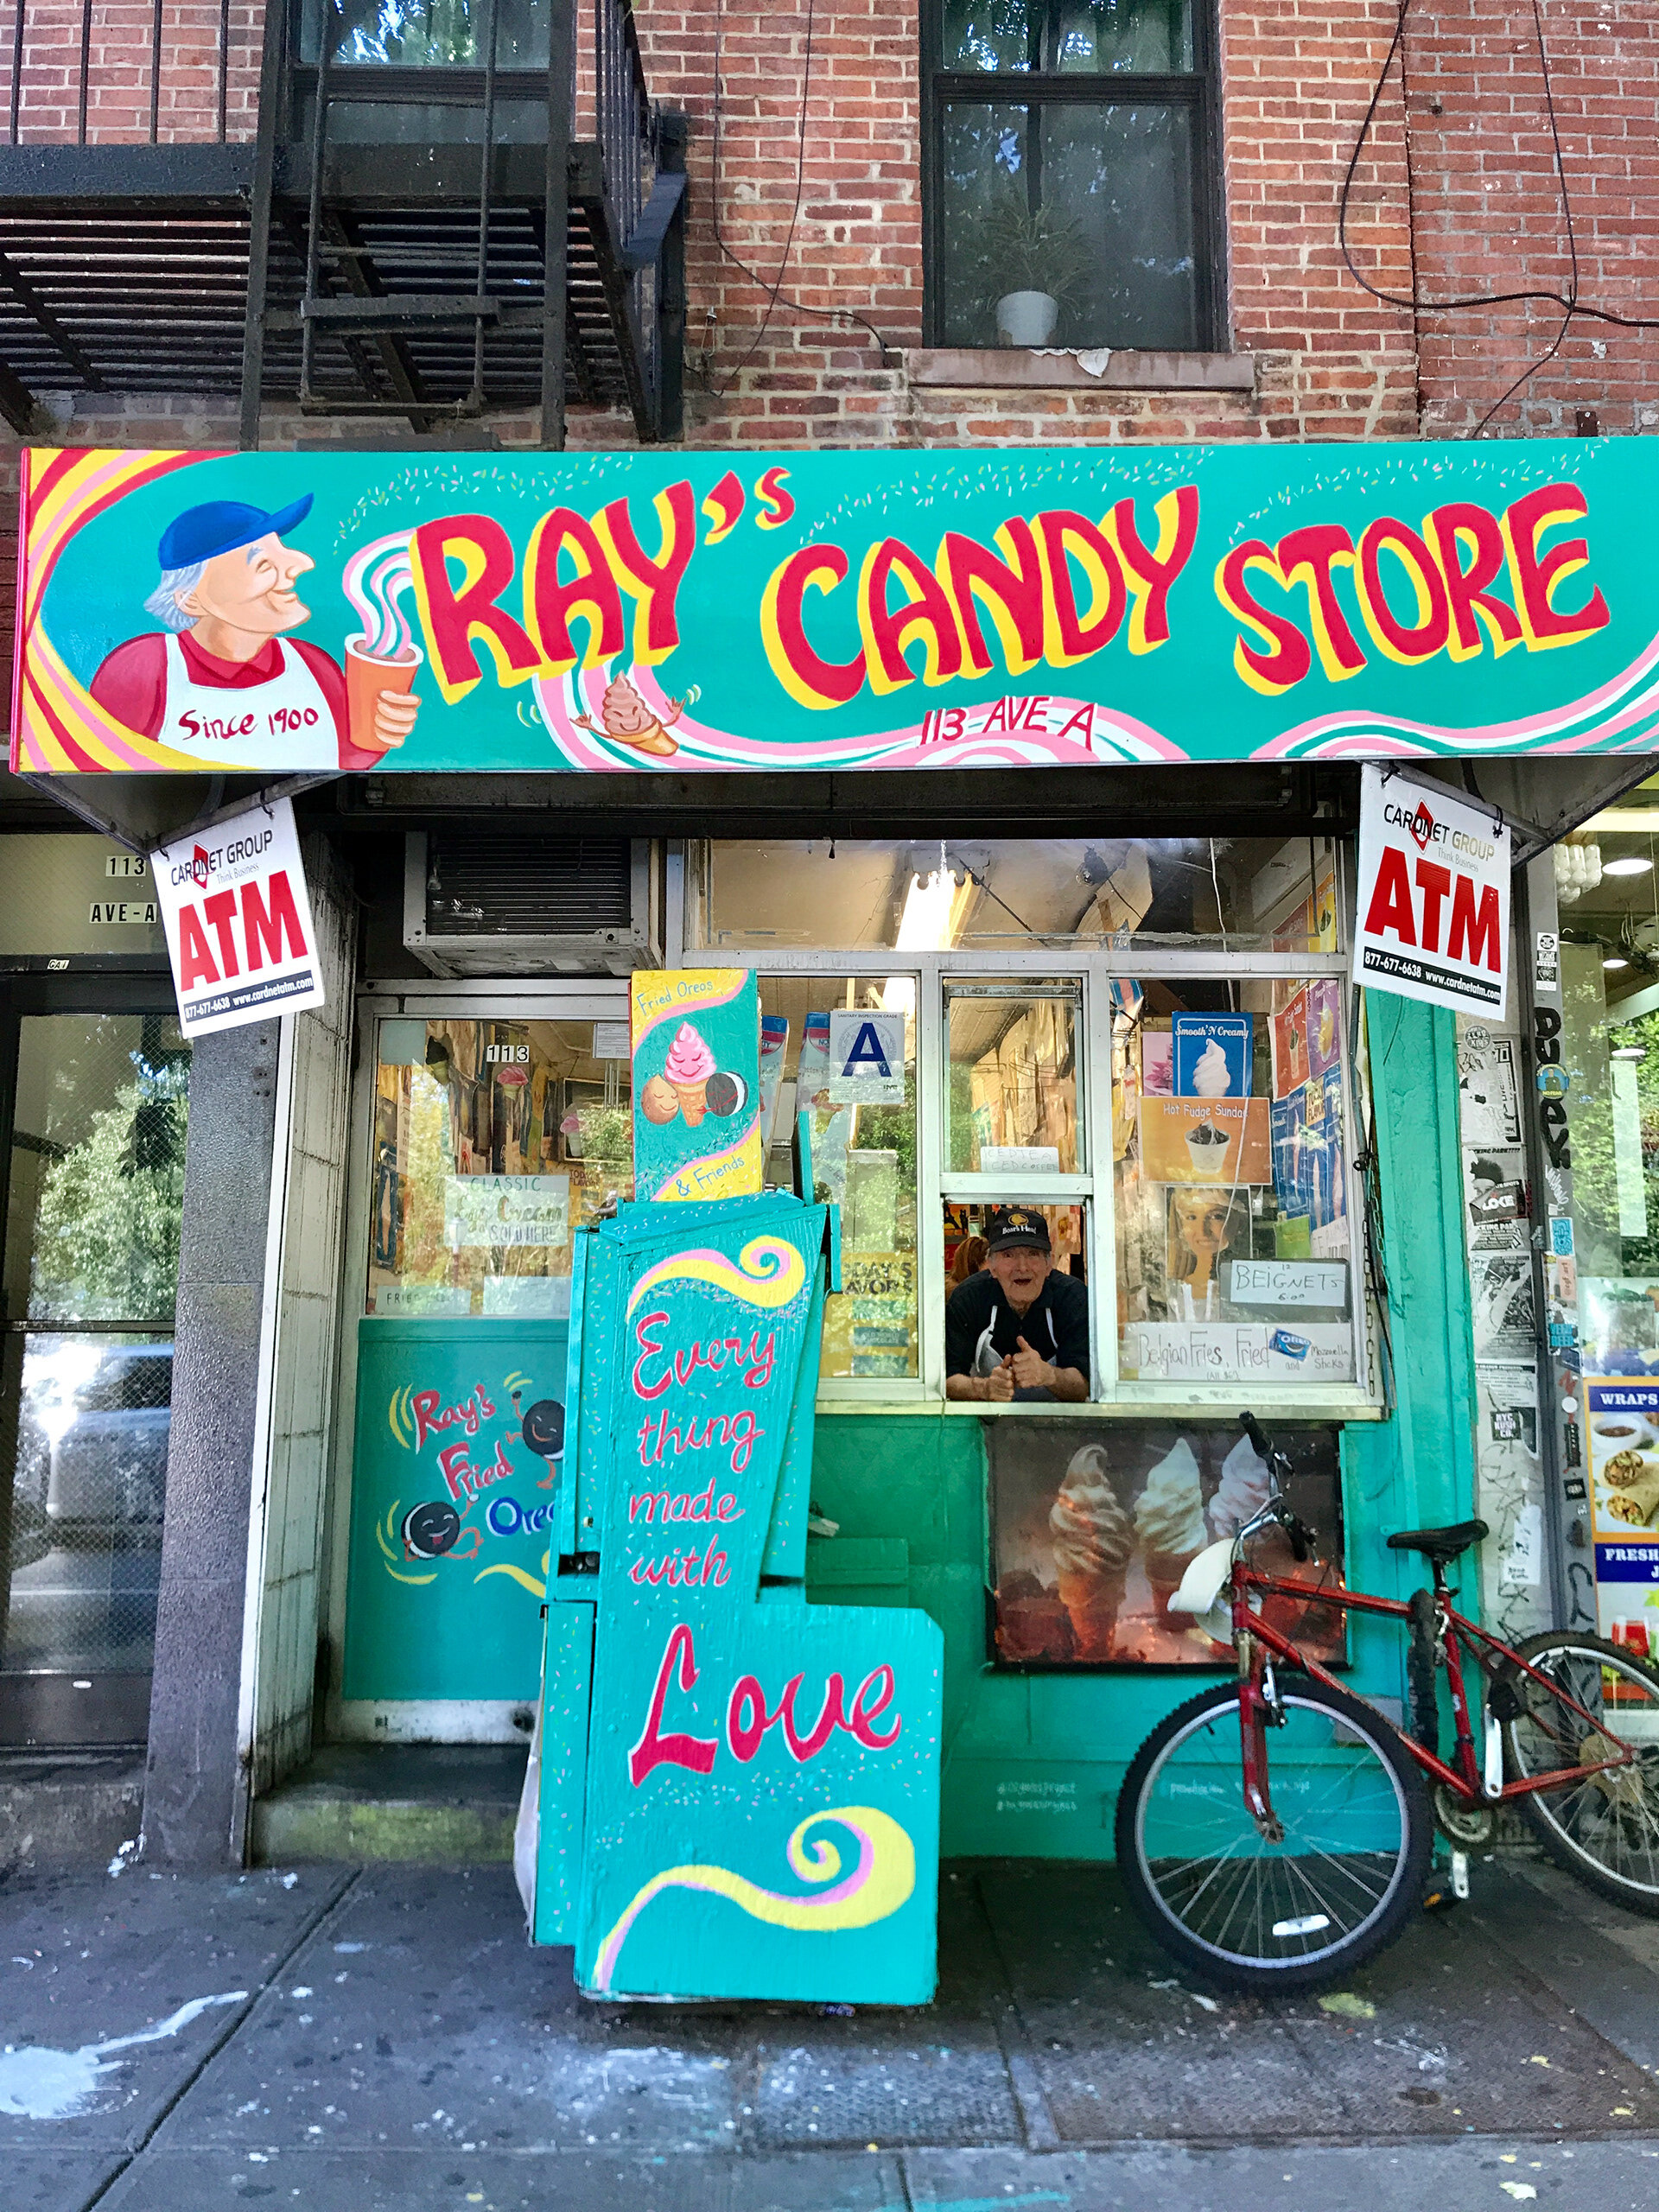 Peach Tao's mural on the front of Ray's Candy Store.